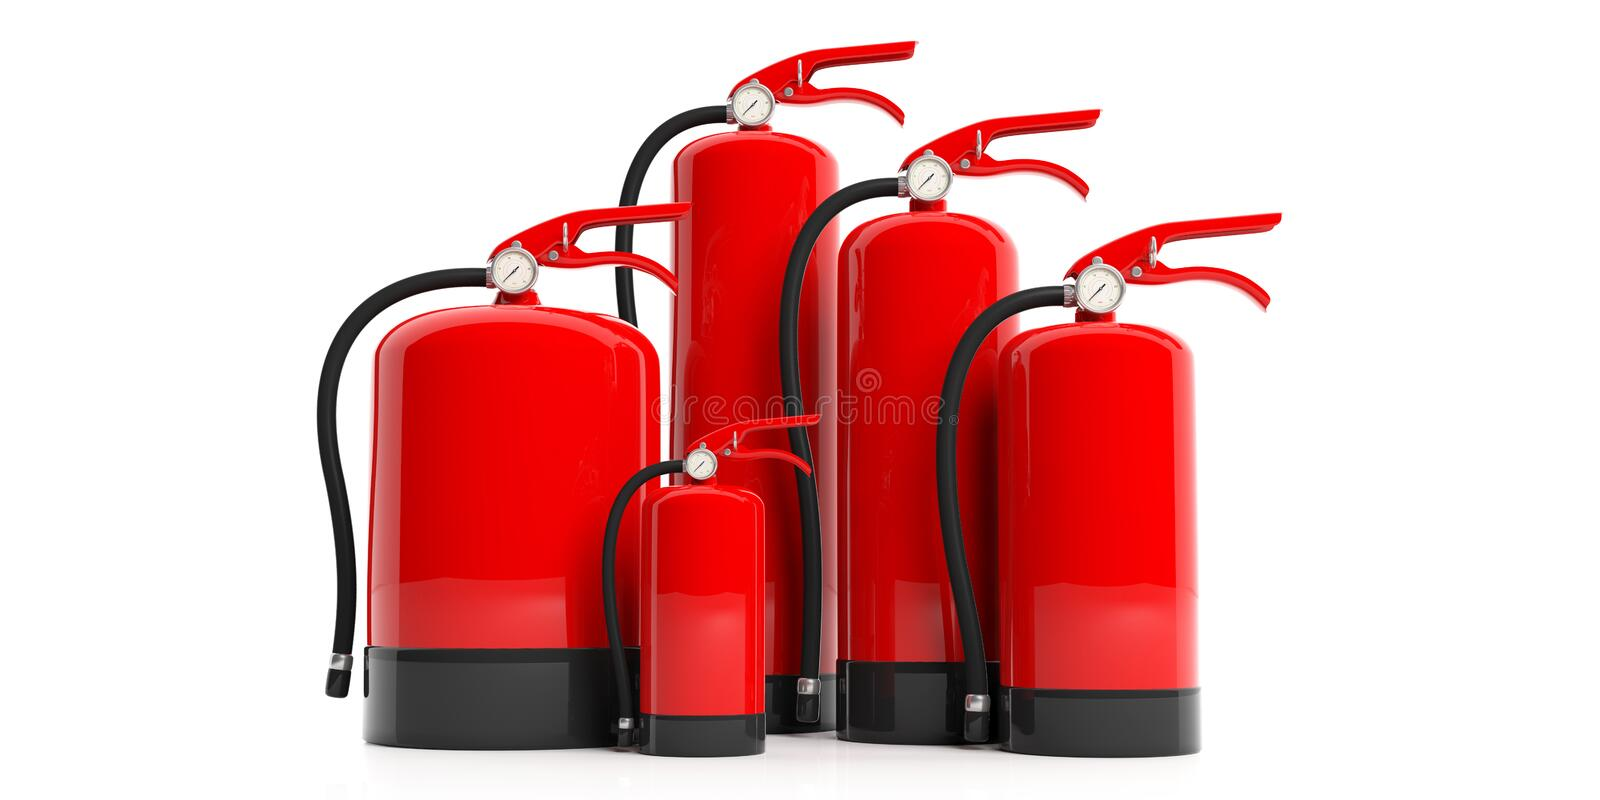 Fire extinguishers isolated on white background. 3d illustration. Fire safety, Group of red fire extinguishers, various sizes, isolated on white background. 3d royalty free illustration